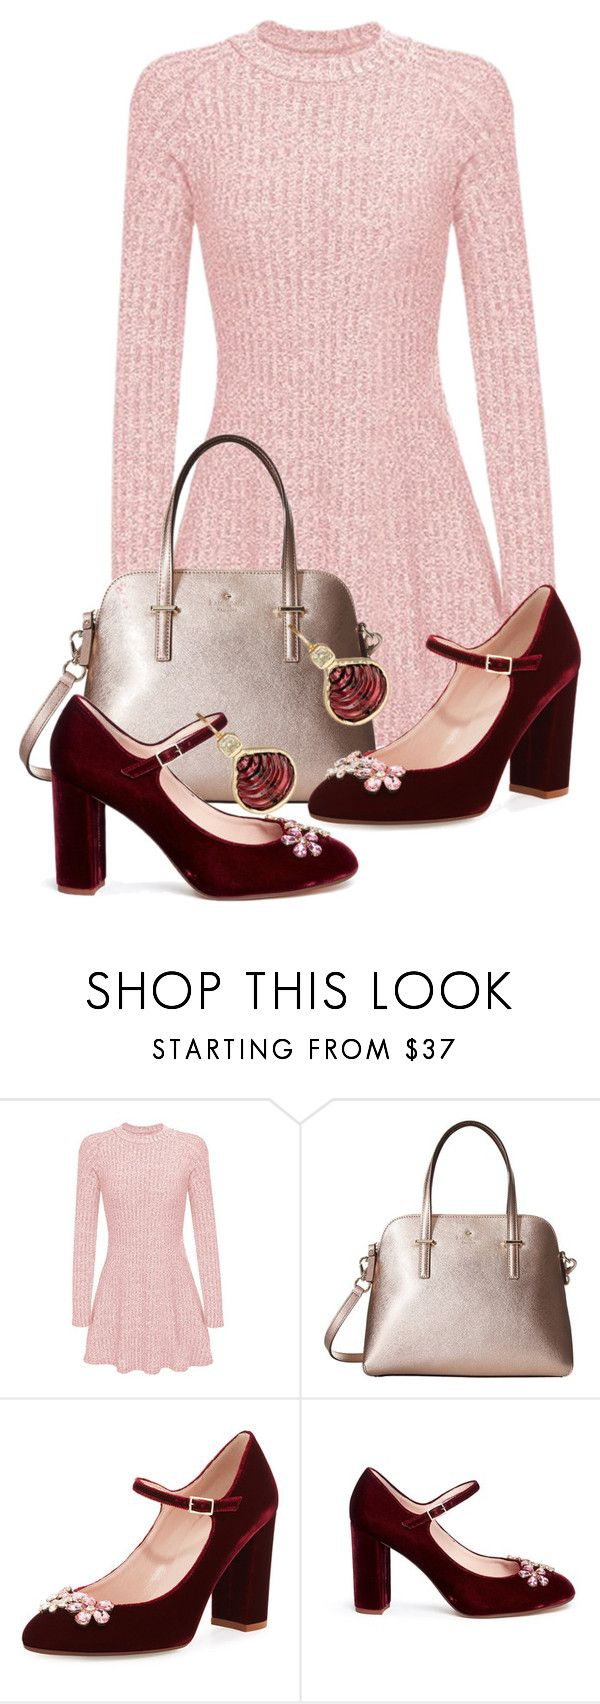 """""""Pretty Festive"""" by tjinwa on Polyvore featuring Kate Spade and Dezso by Sara Beltrán"""